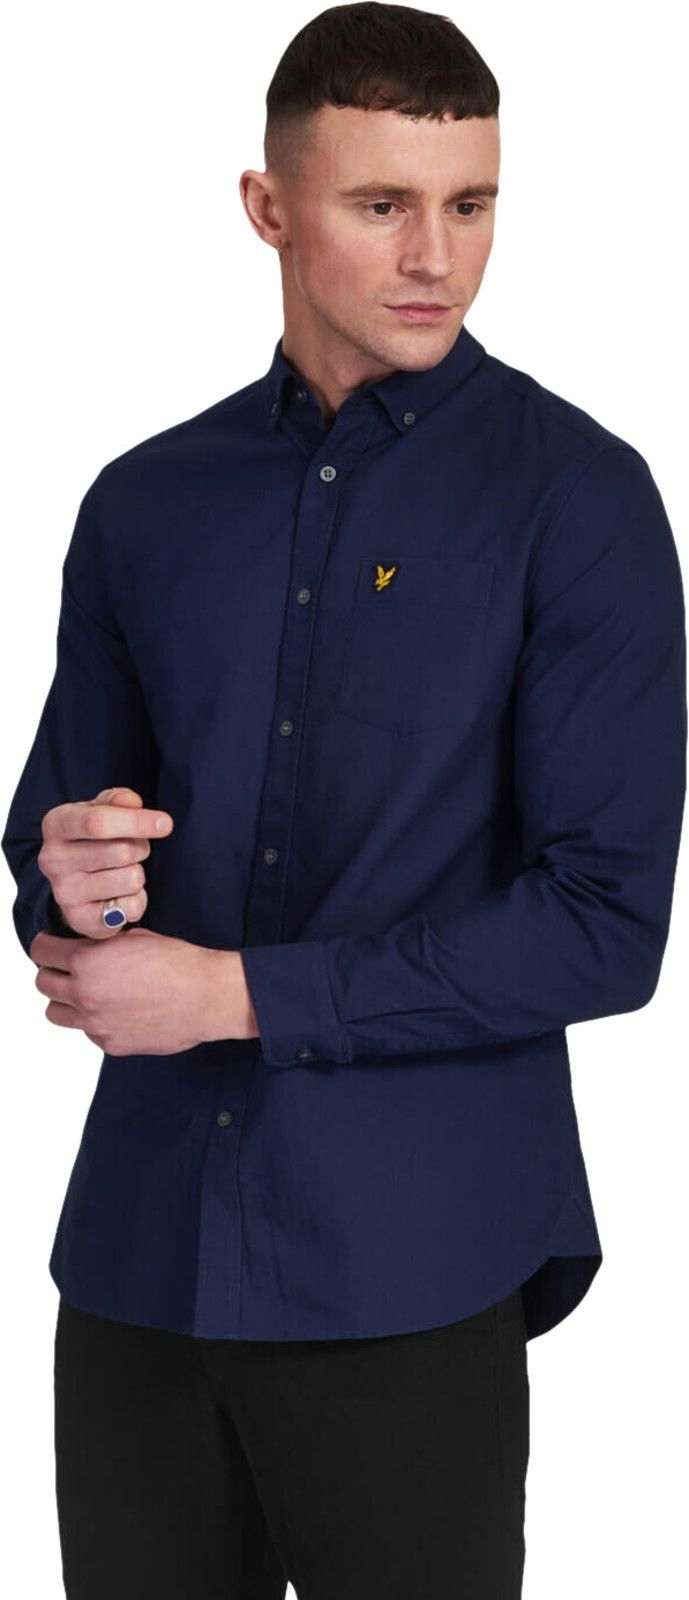 Lyle & Scott Oxford Long Sleeve Shirt Navy